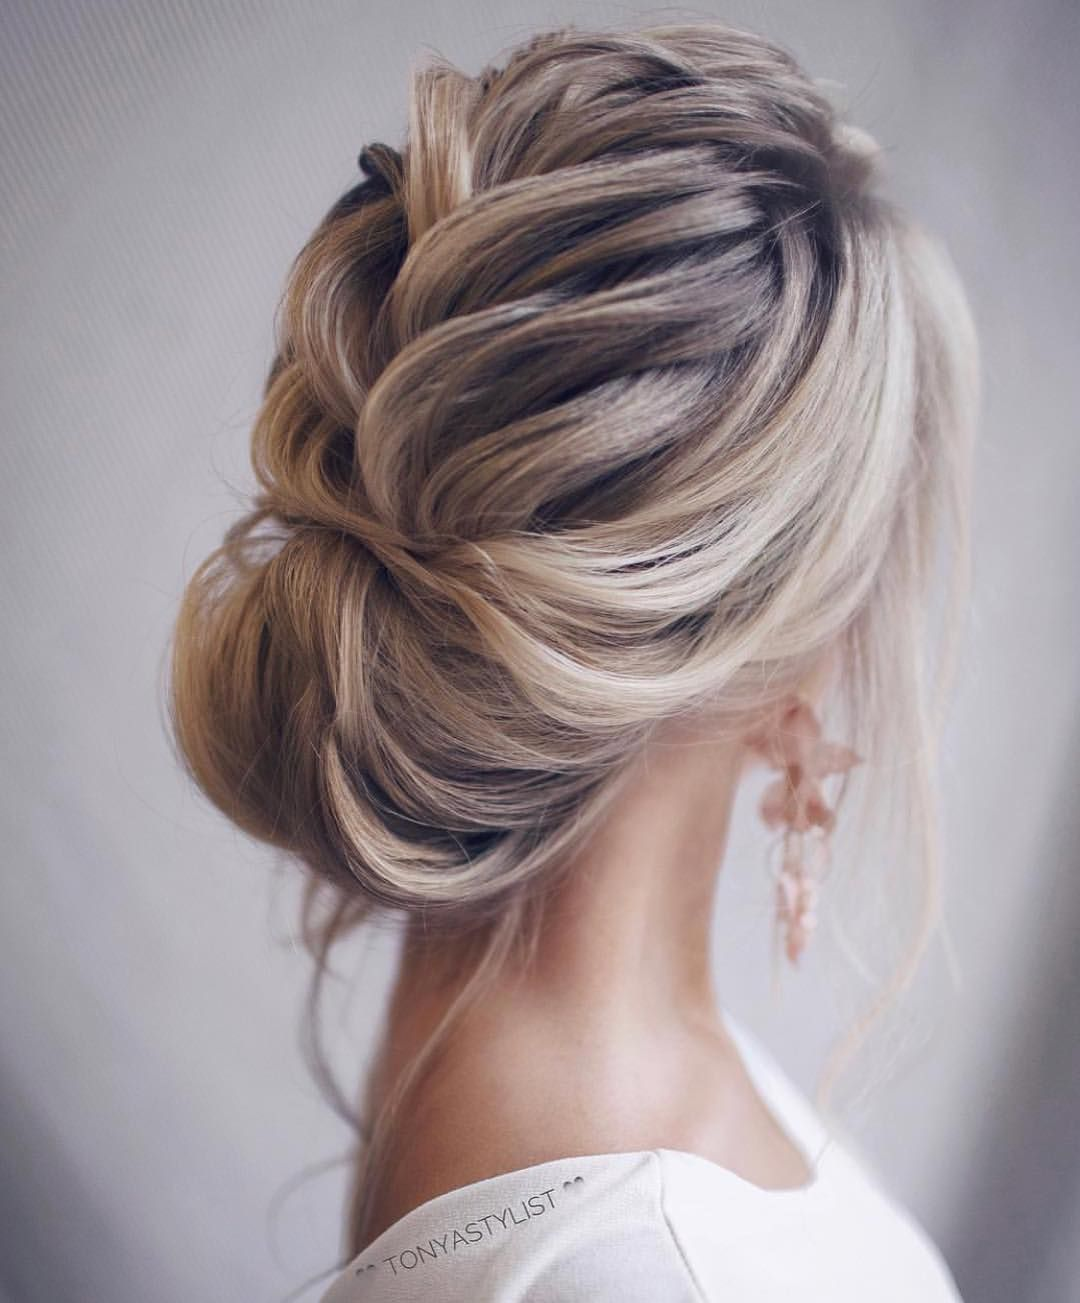 23 Romantic Wedding Hairstyles For Long Hair: 32 Most Romantic Updos For Long Hair